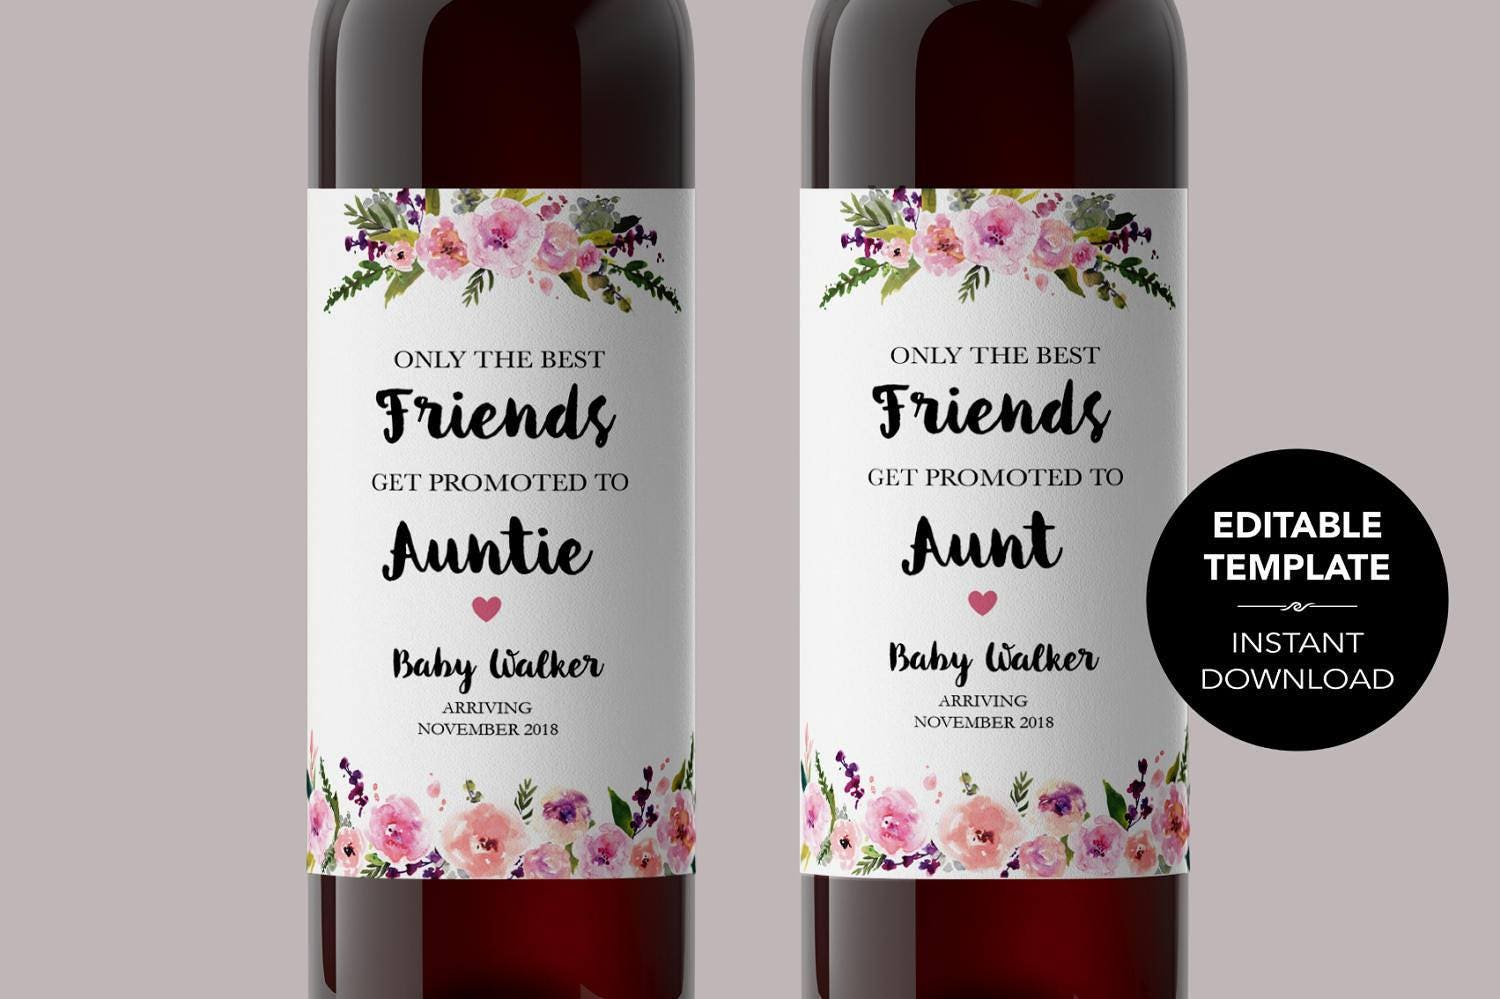 EDITABLE Pregnancy Announcement Wine Label TEMPLATE Edit Wine